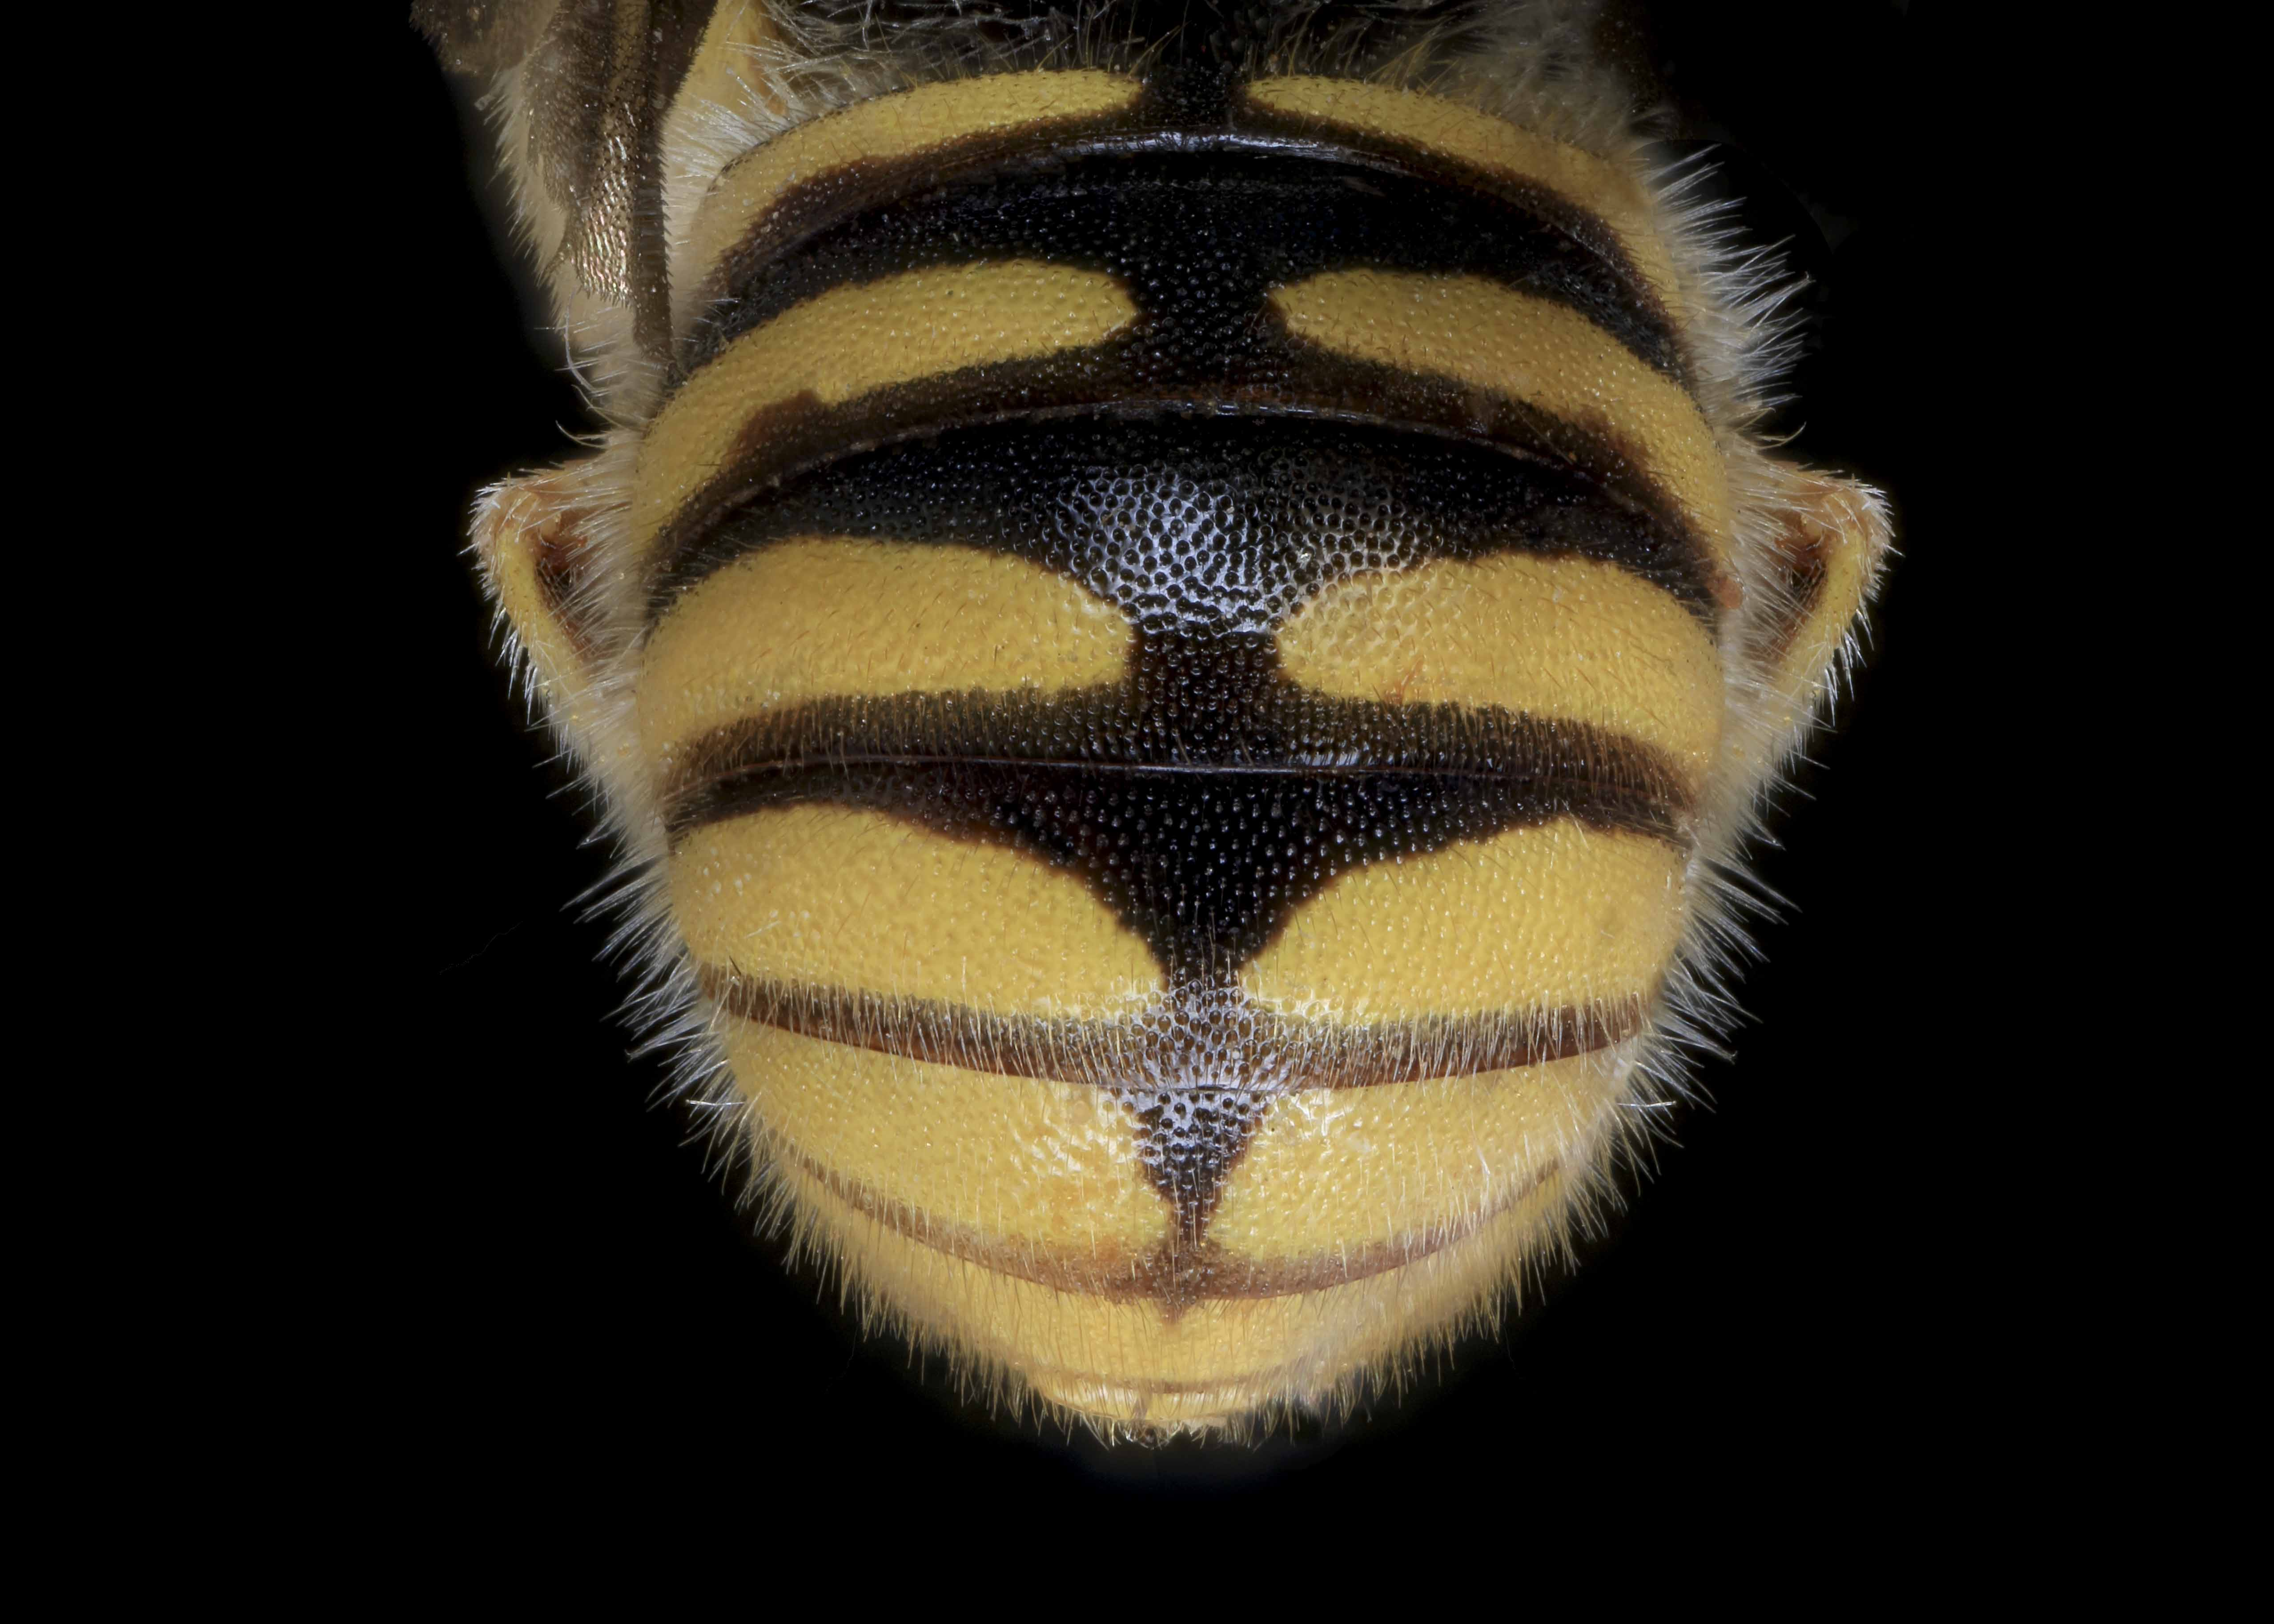 Fig 3.&nbsp;<em>Acedanthidium&nbsp;</em>sp. male abdomen.  Photo: C. Ritner  &copy; Division of Entomology, University of Kansas Biodiversity Institute